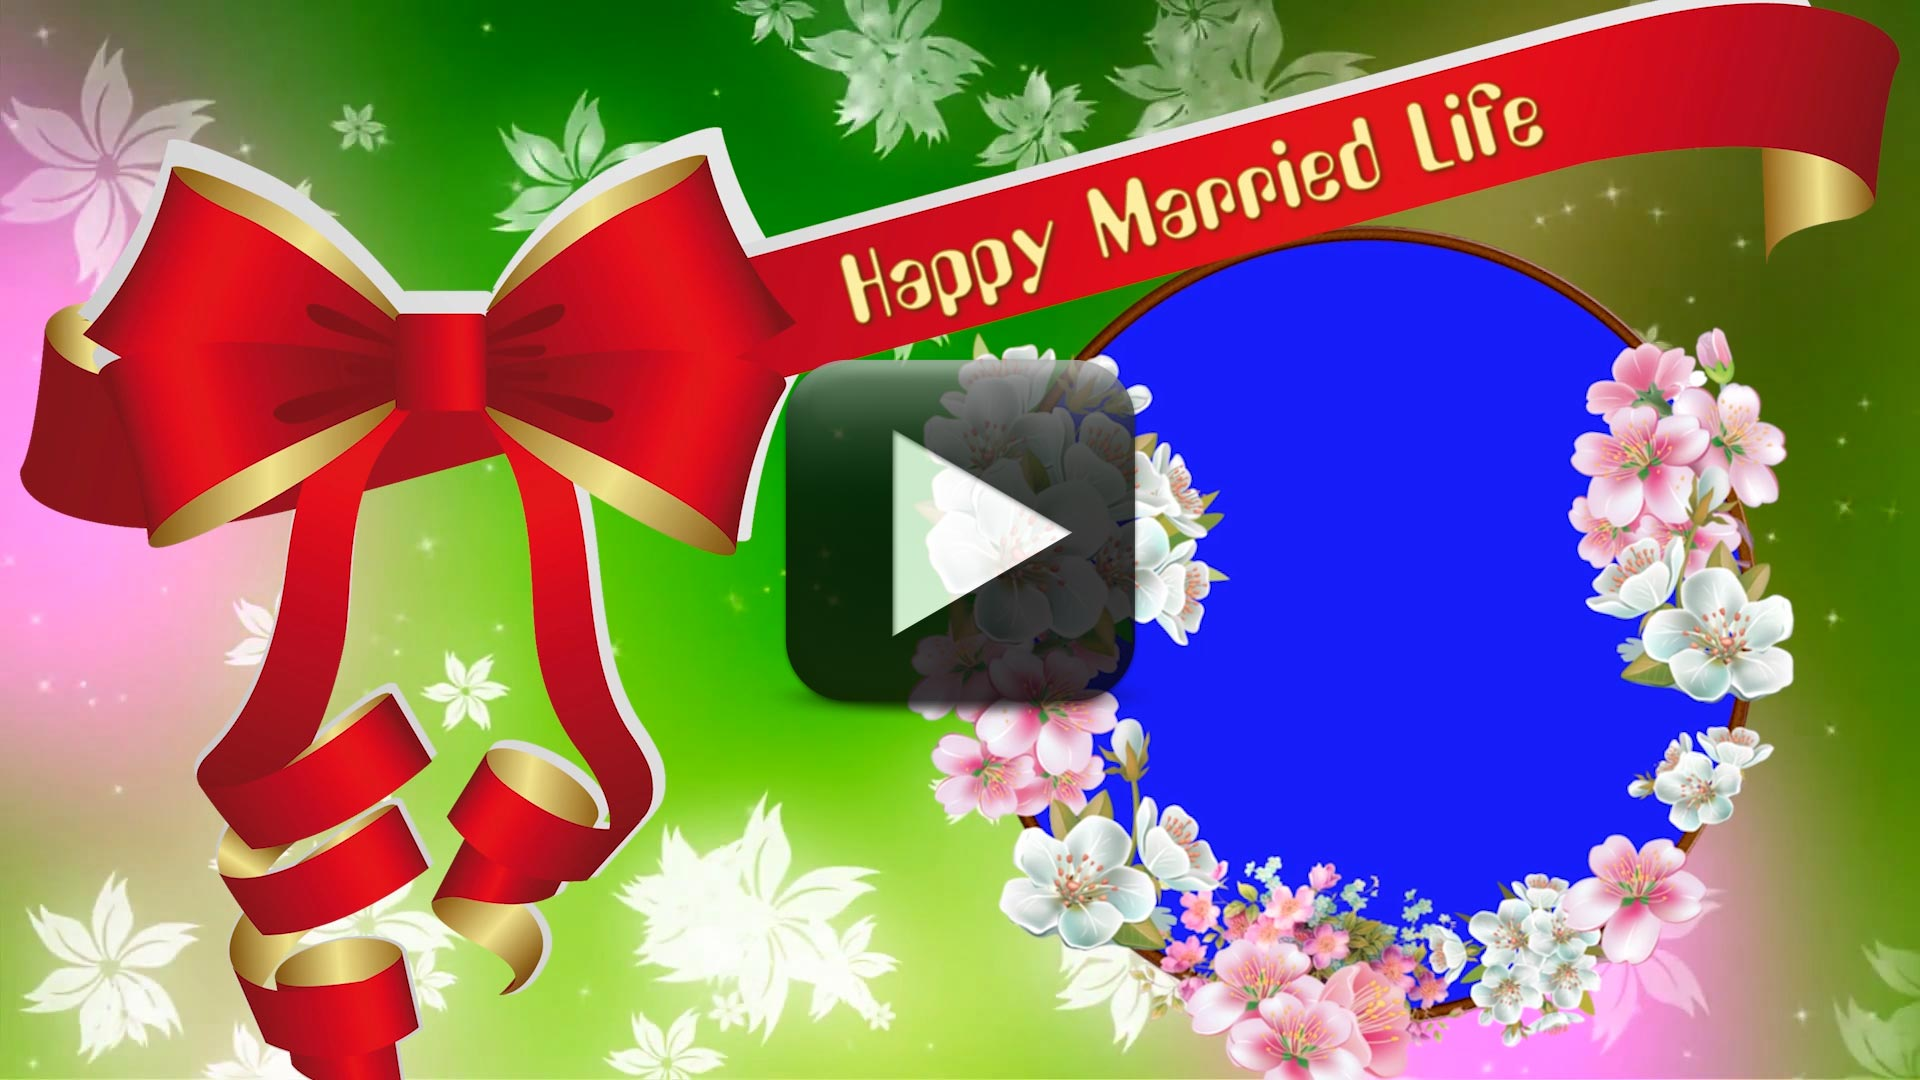 Wedding Motion Backgrounds-Happy Married Life